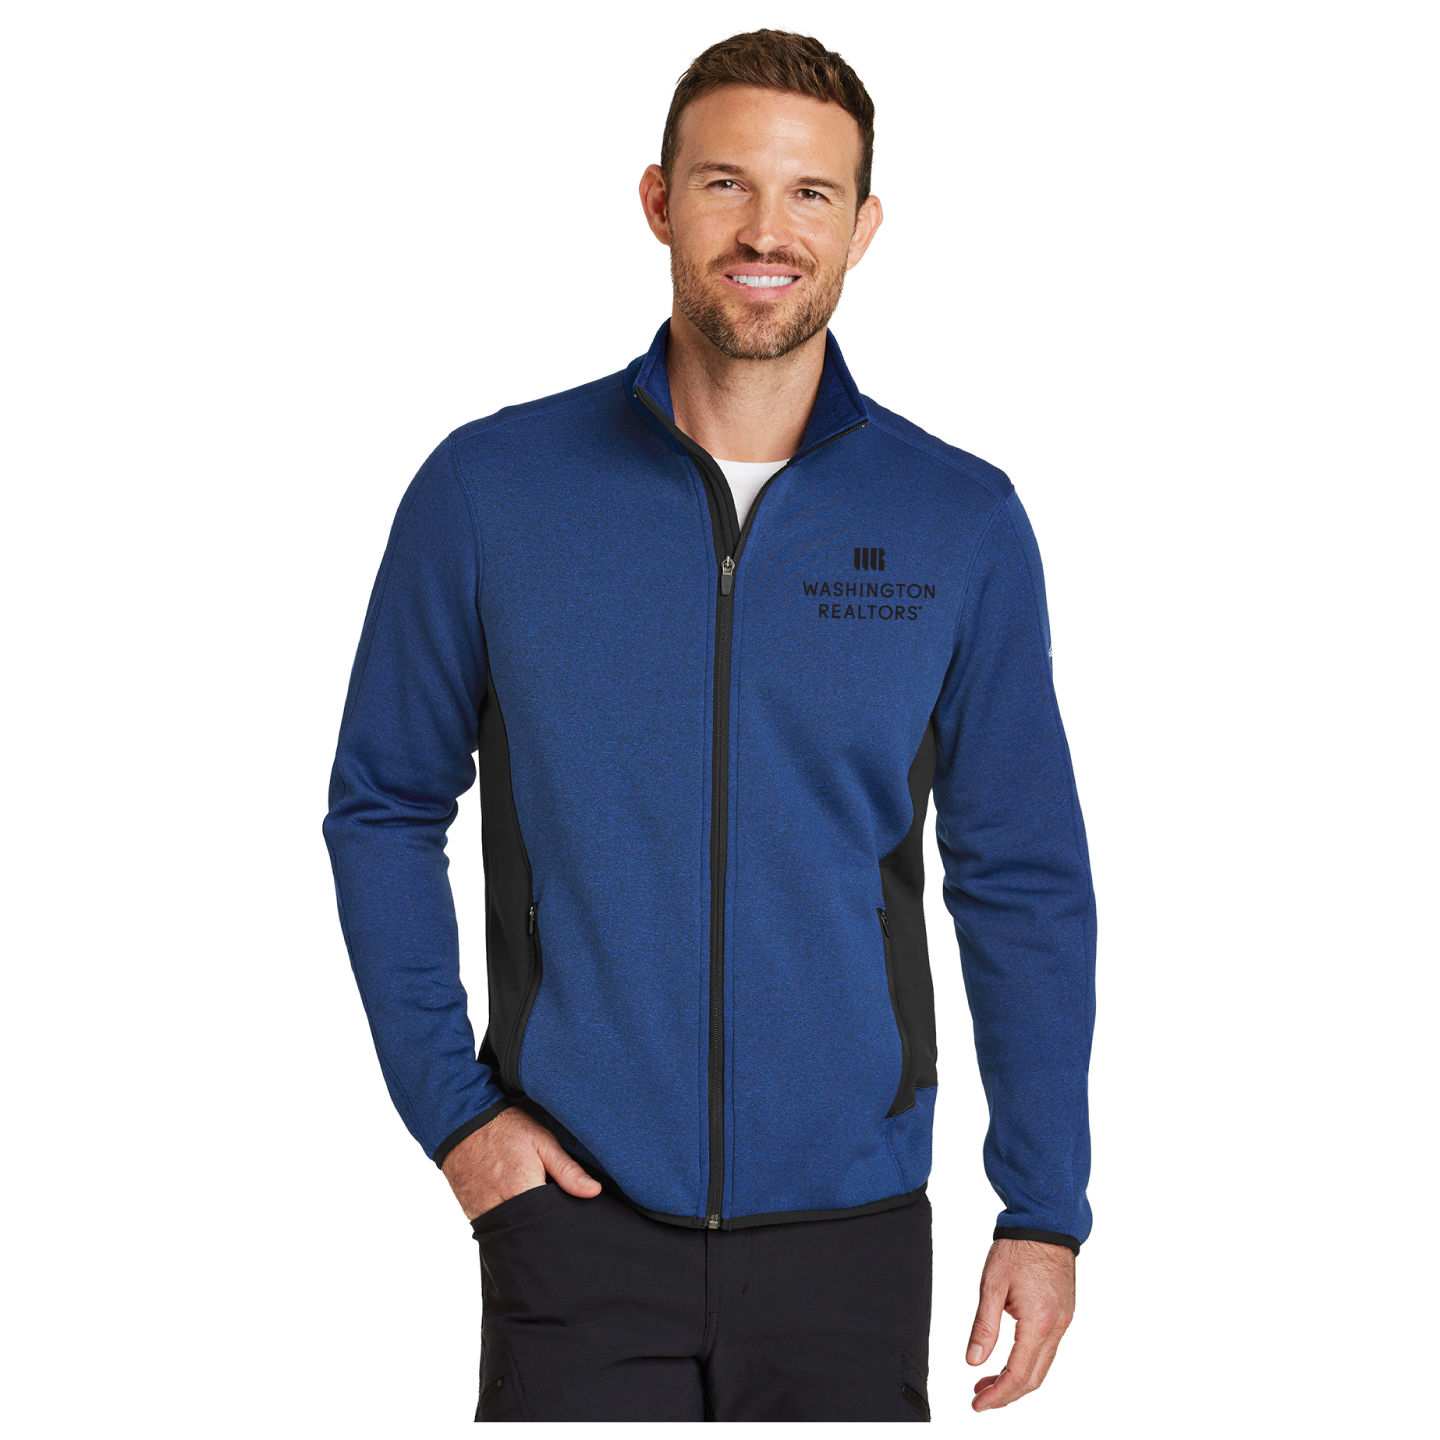 Washington REALTORS® Men's Eddie Bauer Fleece Jacket